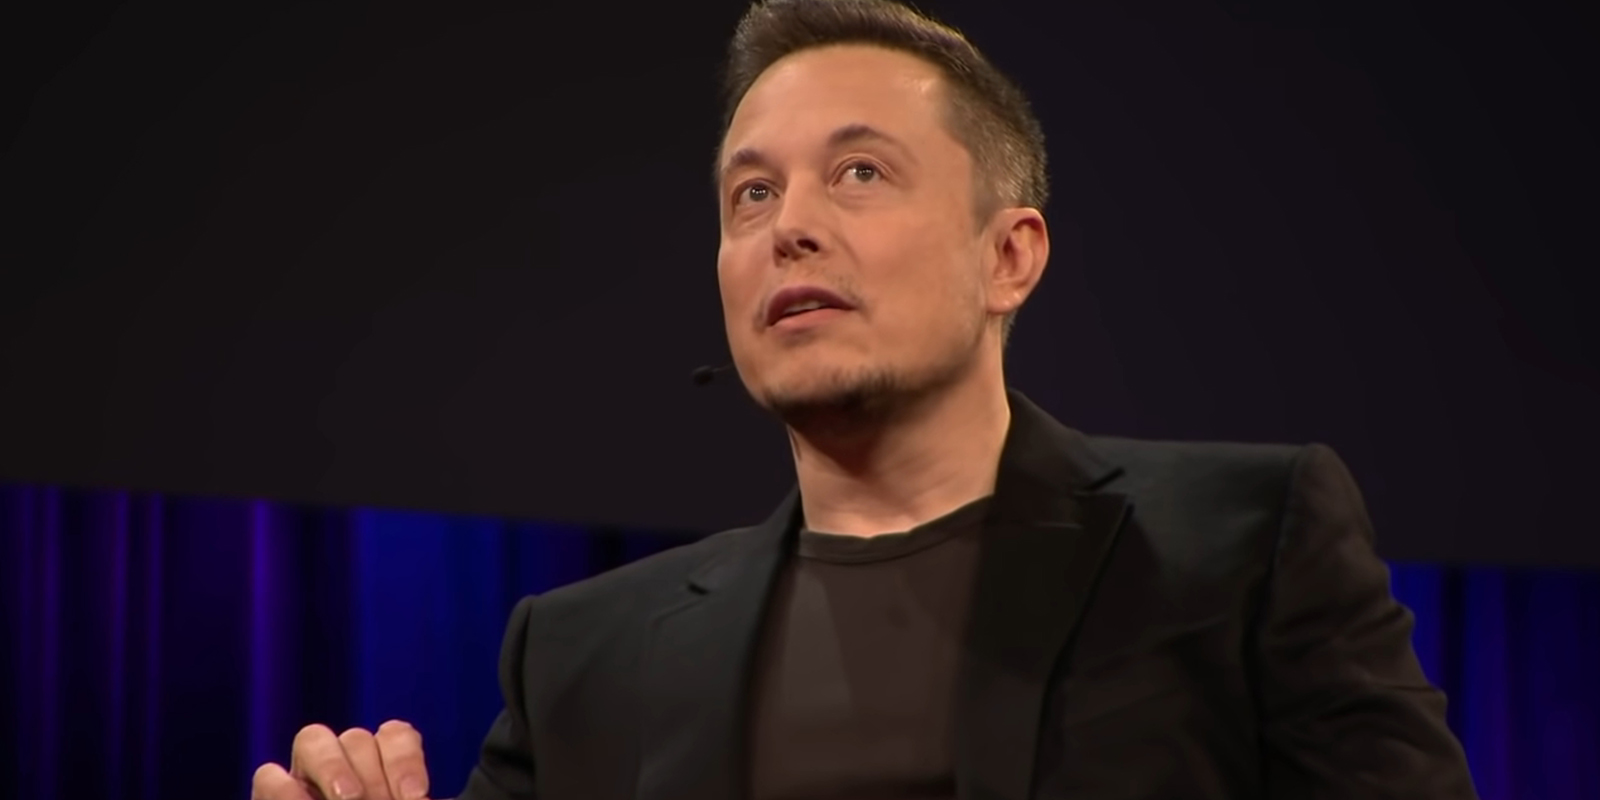 A picture of Elon Musk from a TED talk